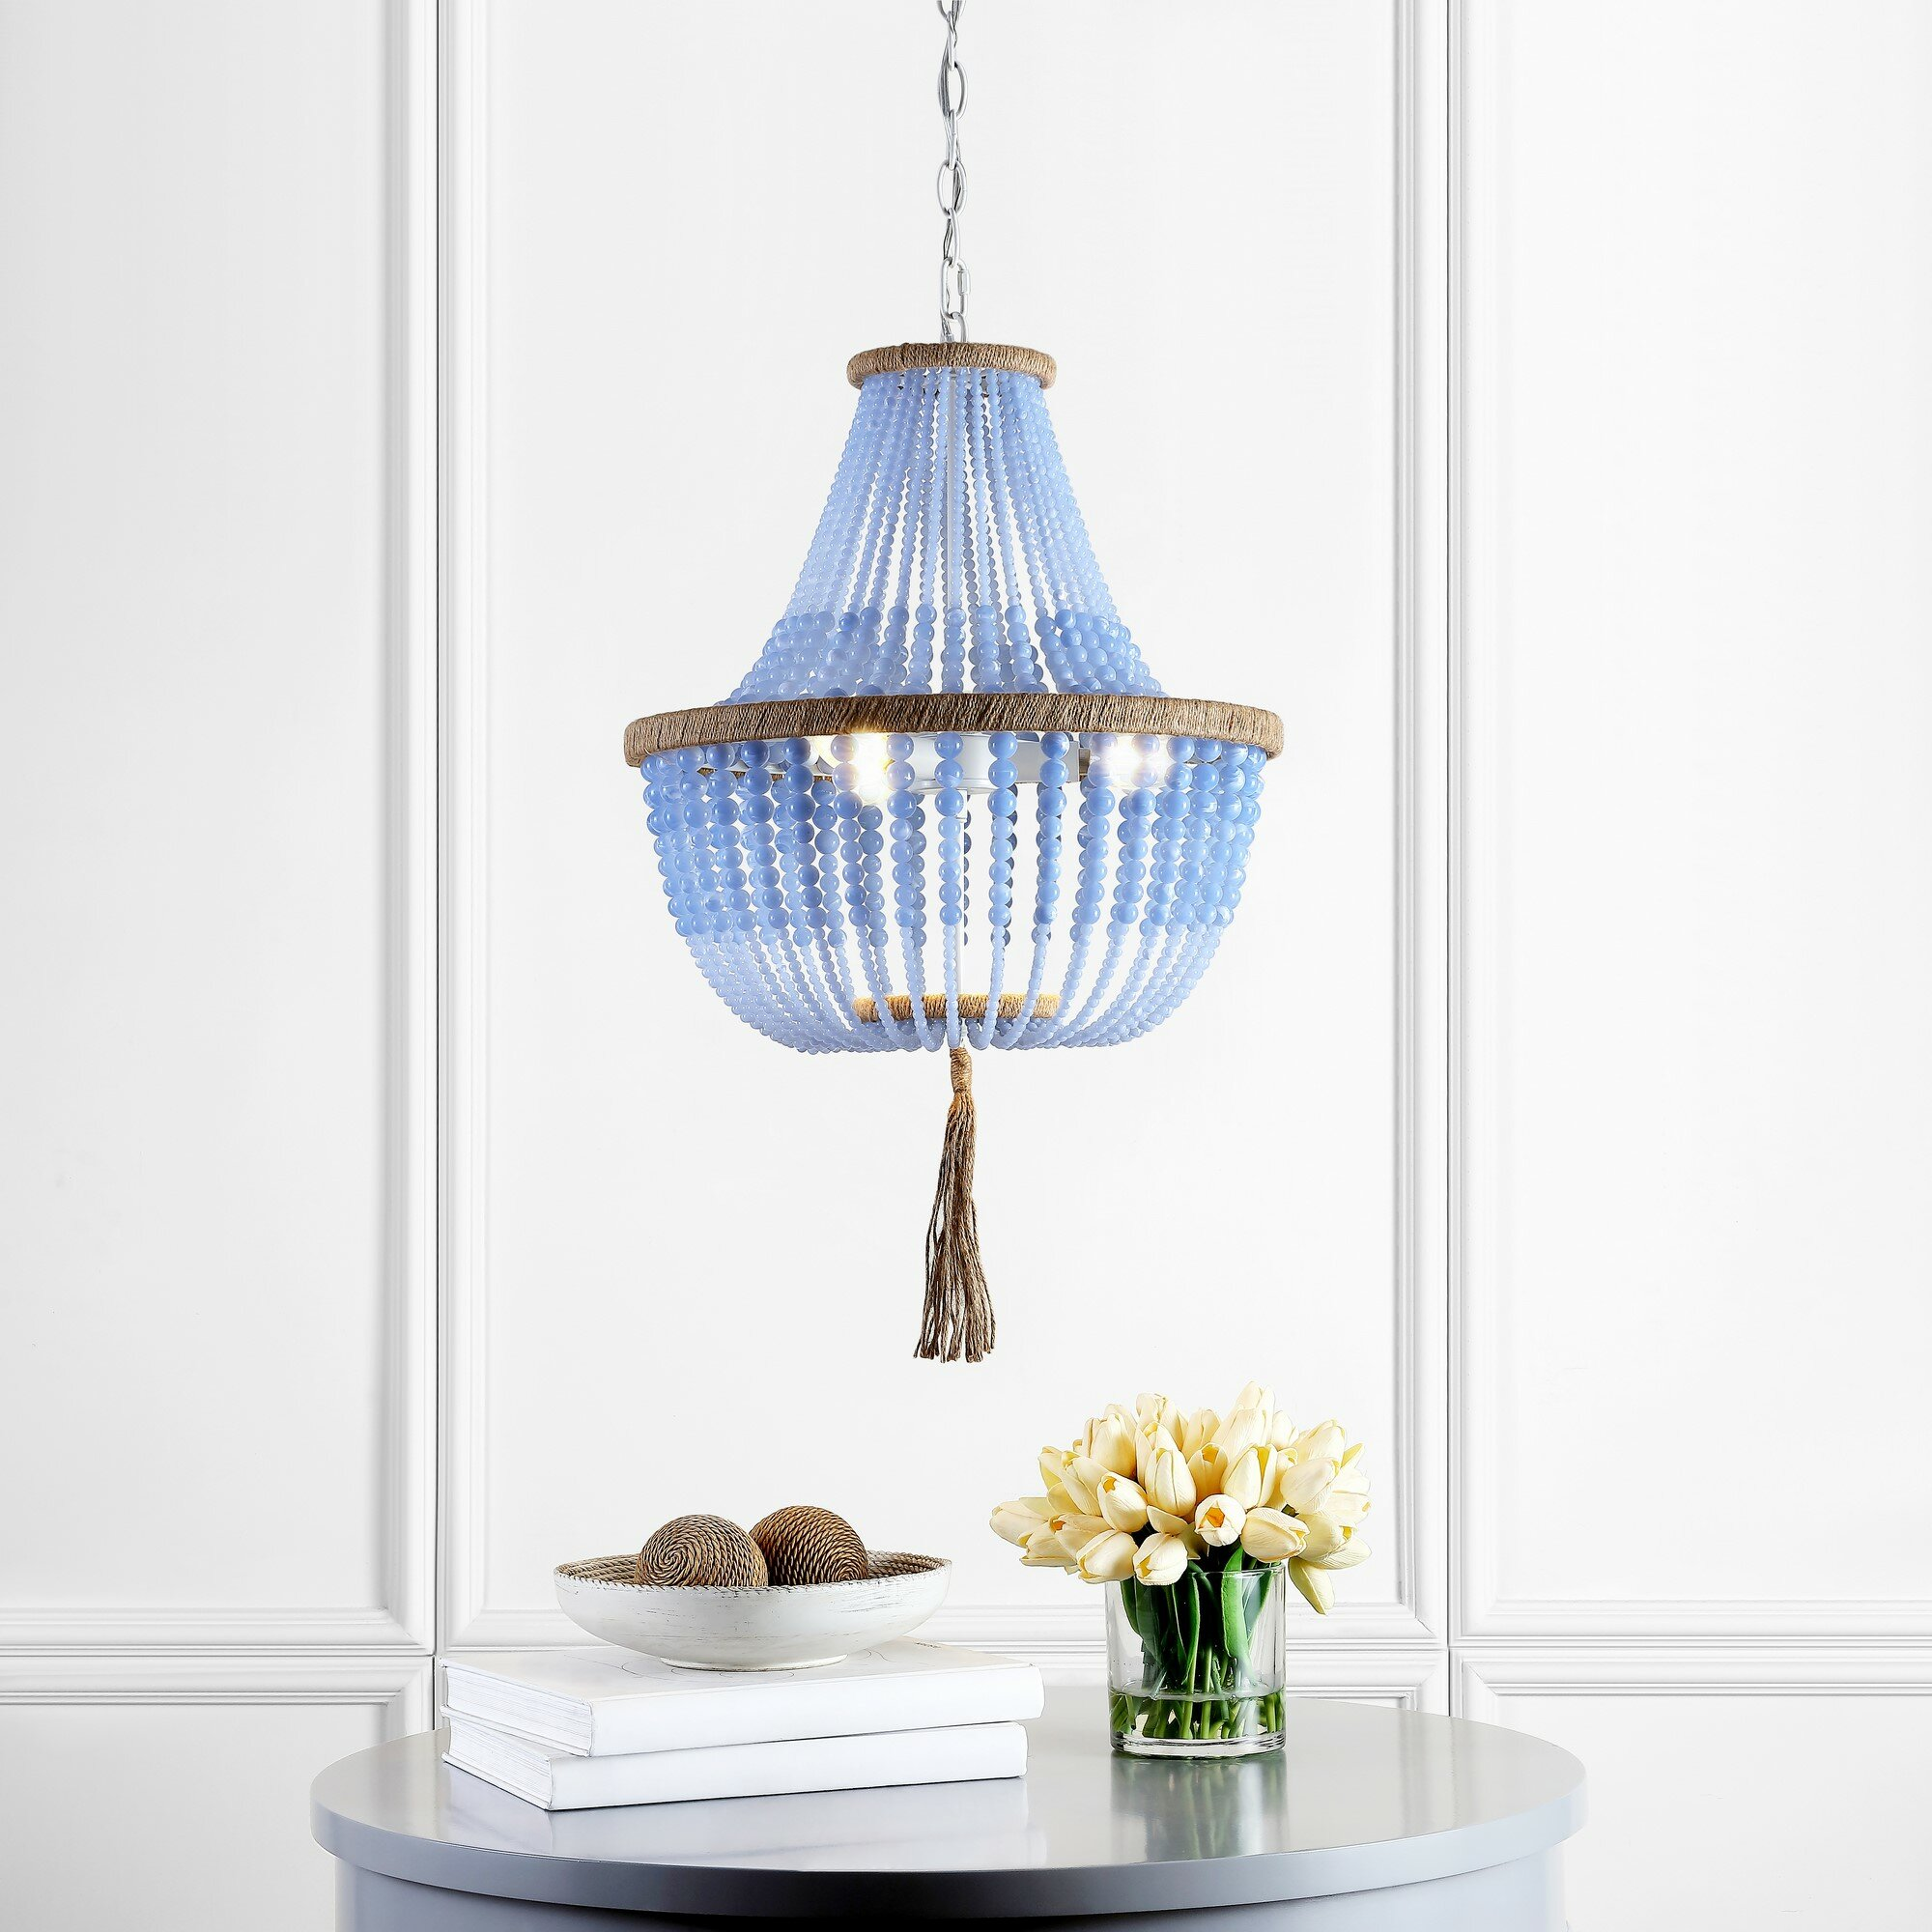 Alta 3 Light Unique Statement Empire Chandelier With Beaded Accents Reviews Joss Main